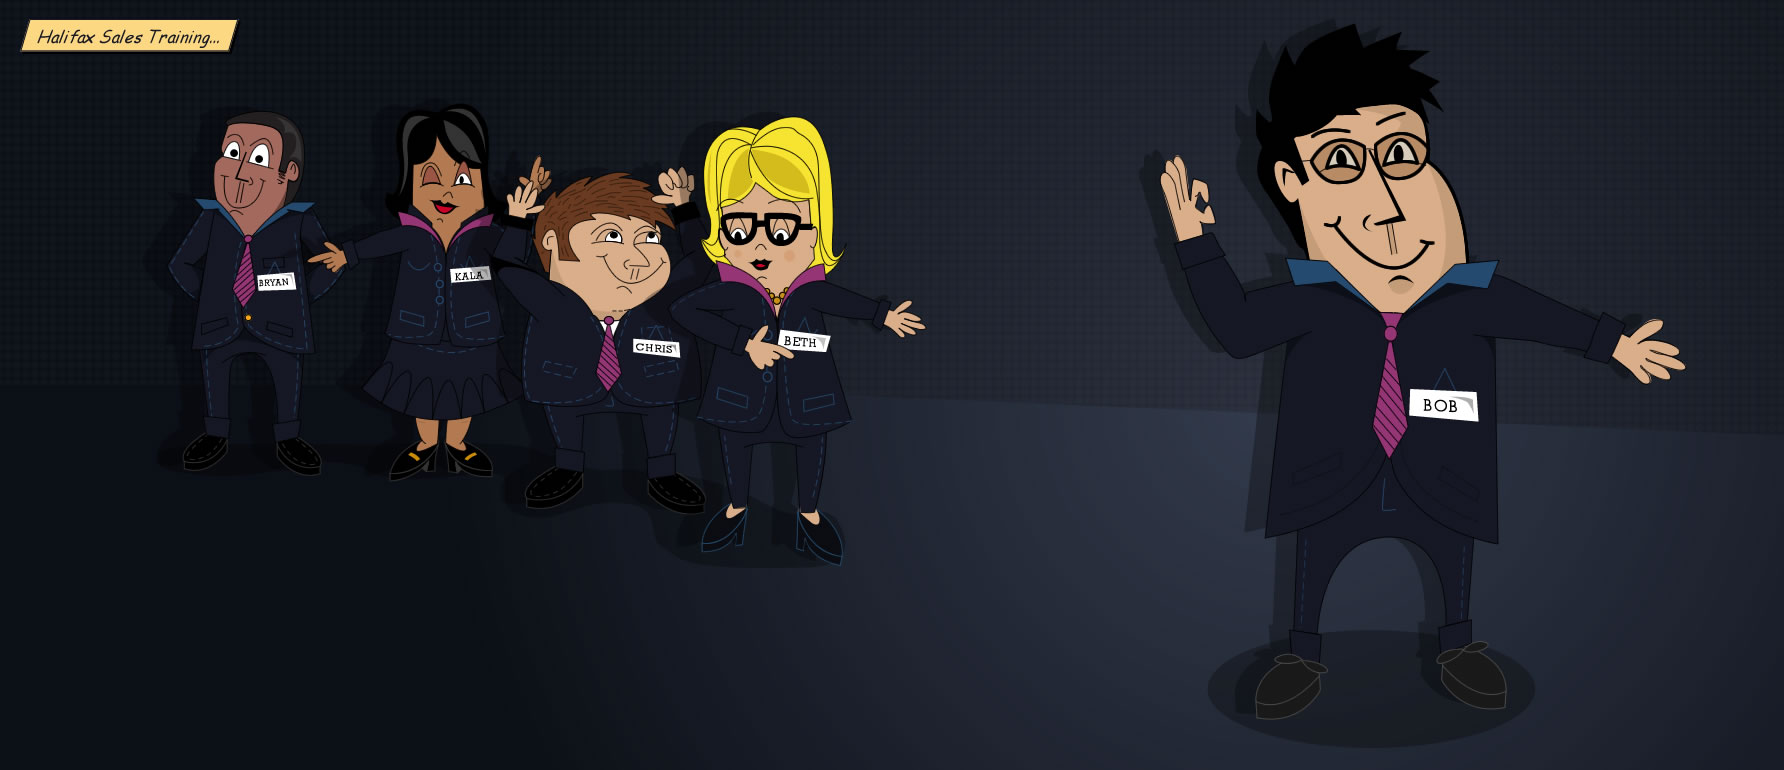 Character illustrations for Halifax sales training course